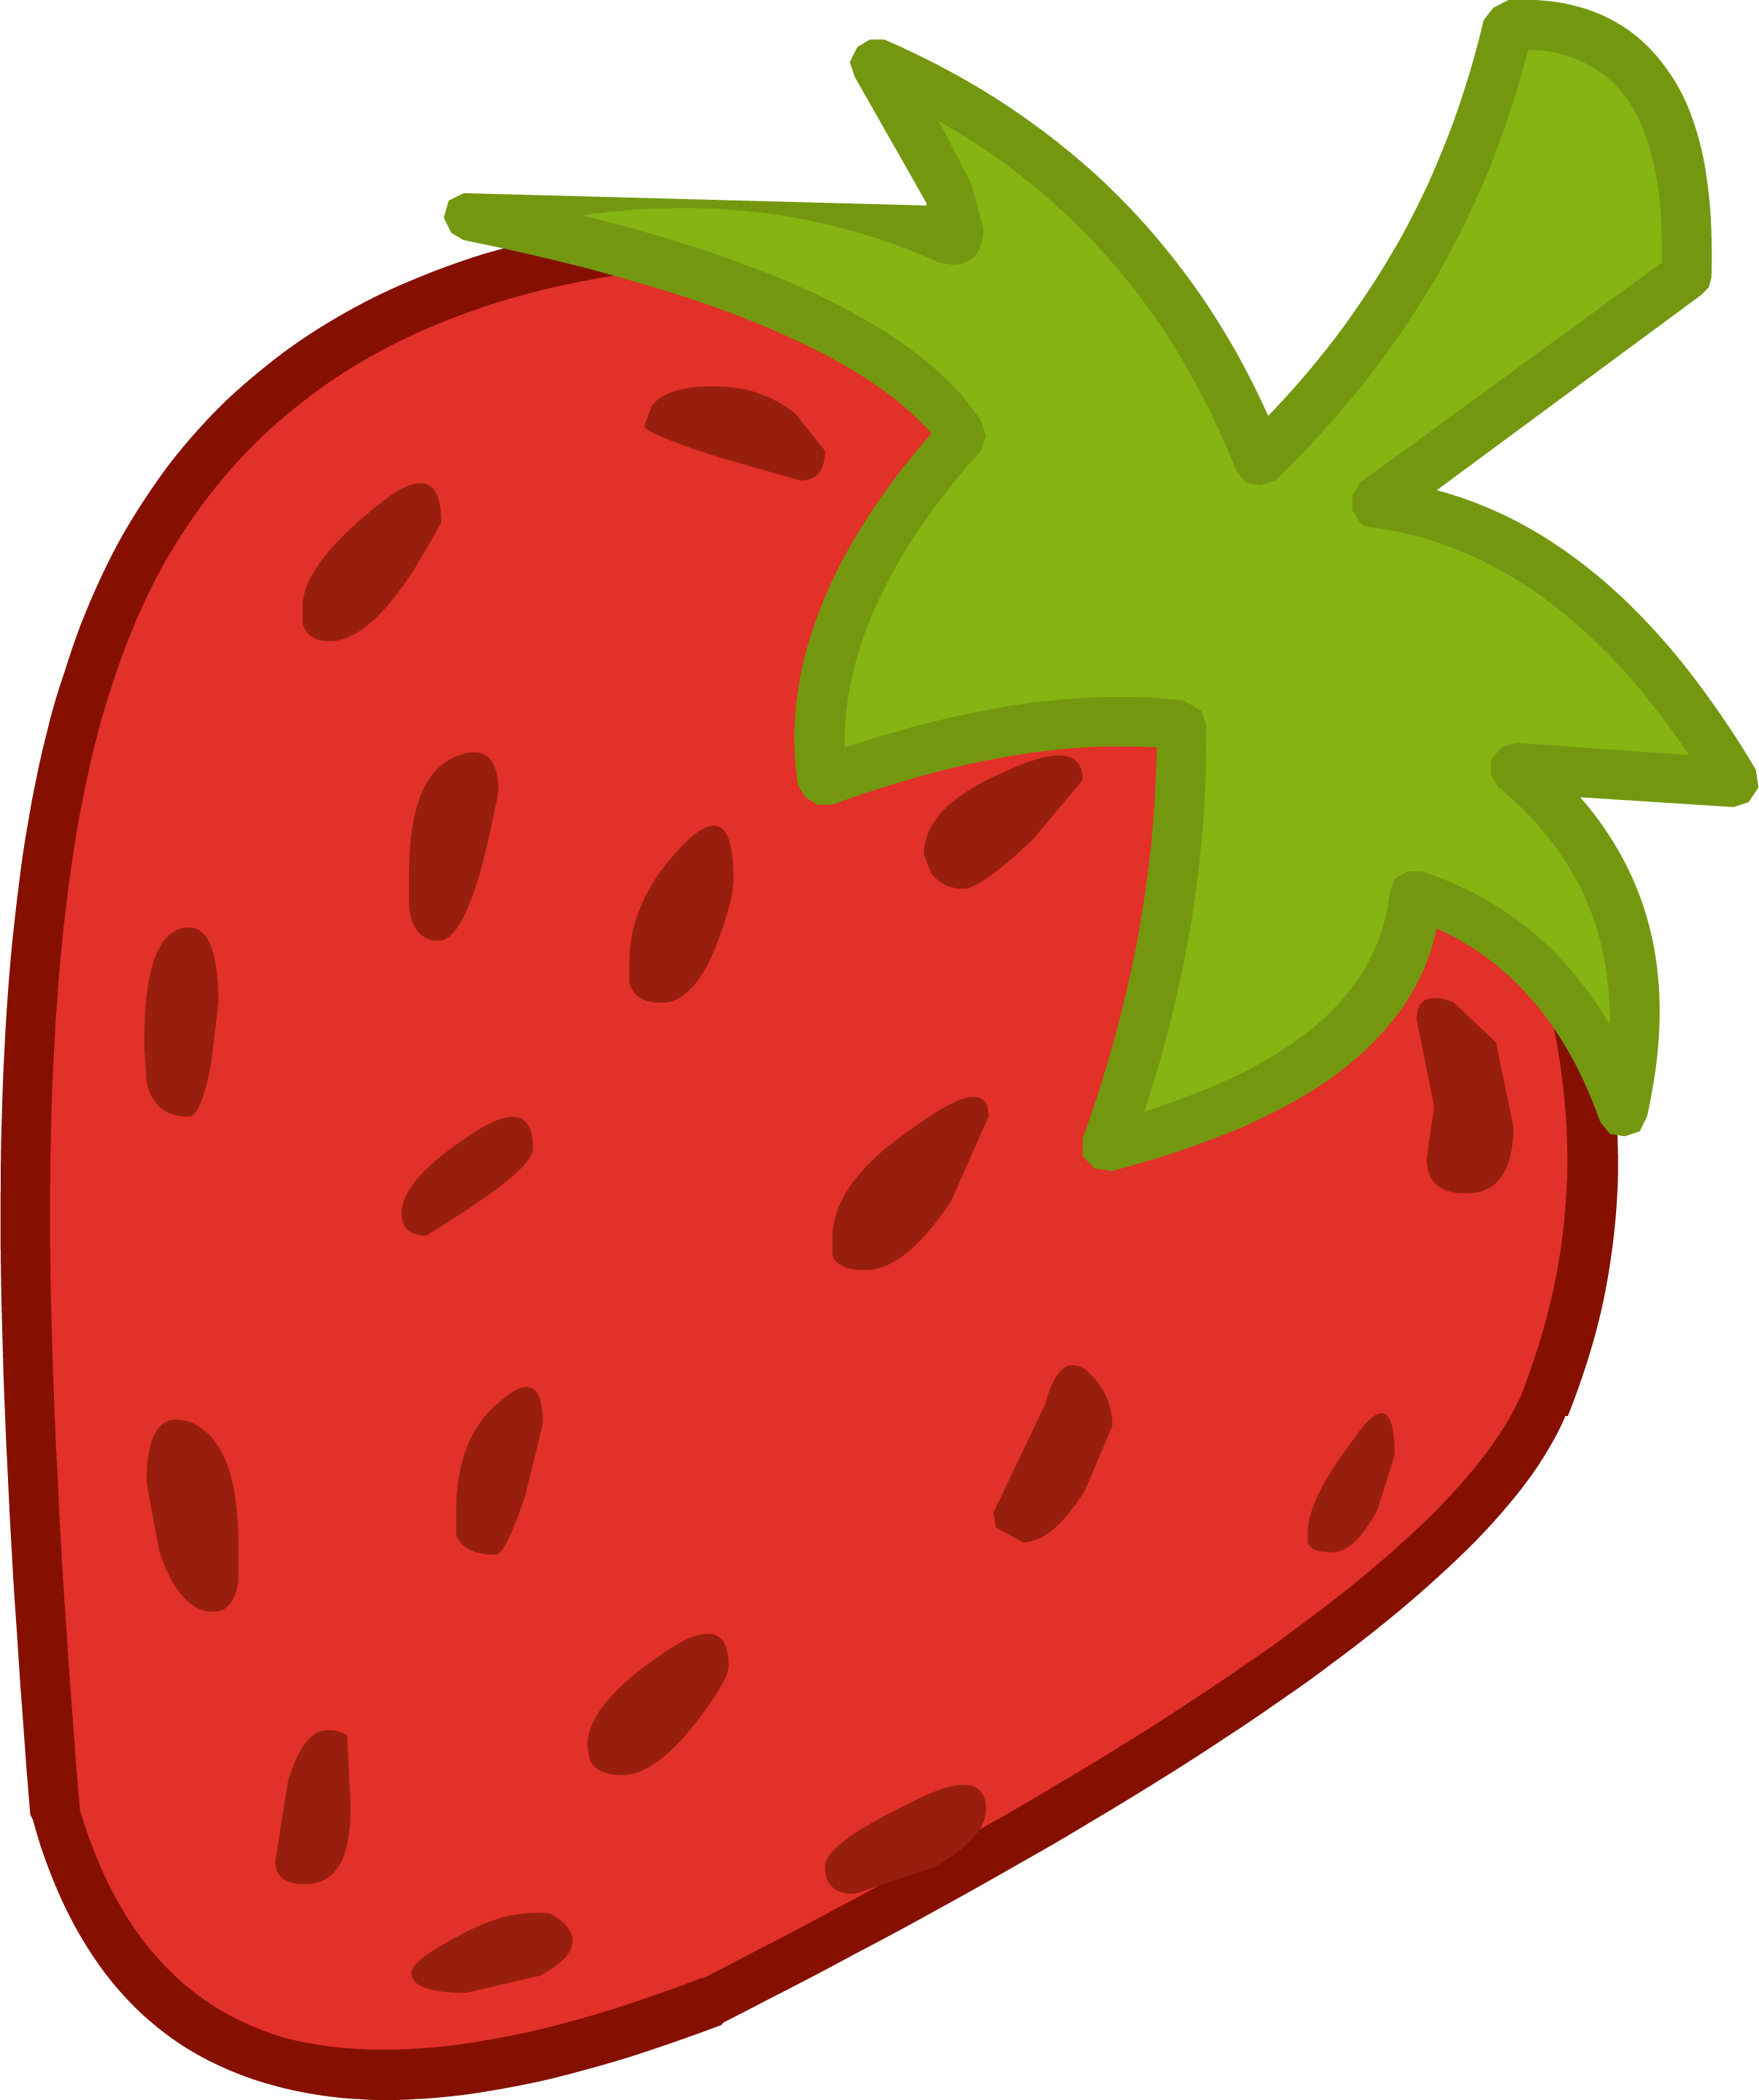 Strawberry clipart Strawberry drawings Strawberry clipart Download